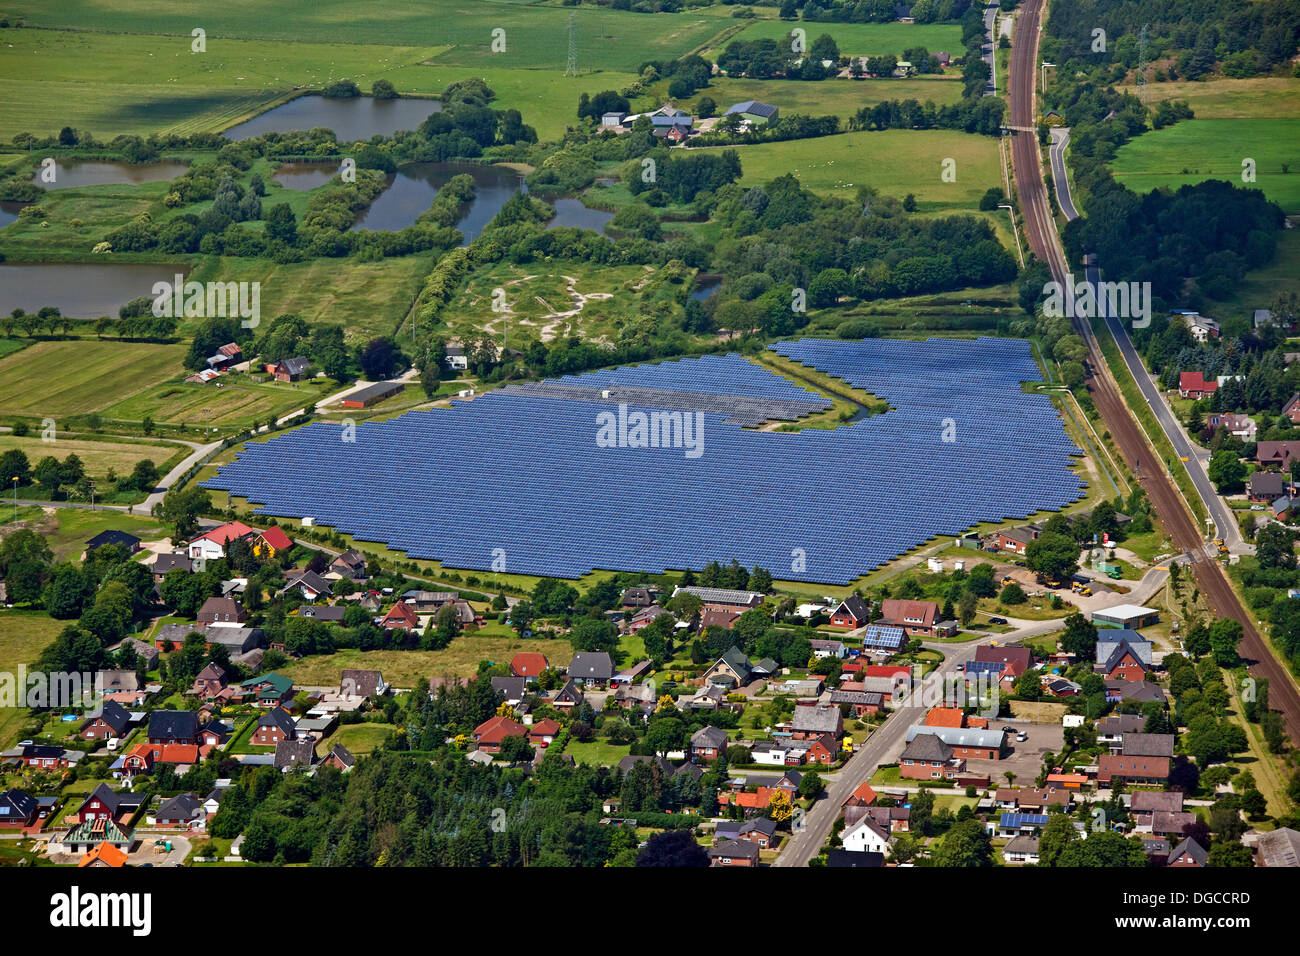 Aerial view over photovoltaic power station / solar park for the supply of merchant power into the electricity grid, Germany - Stock Image